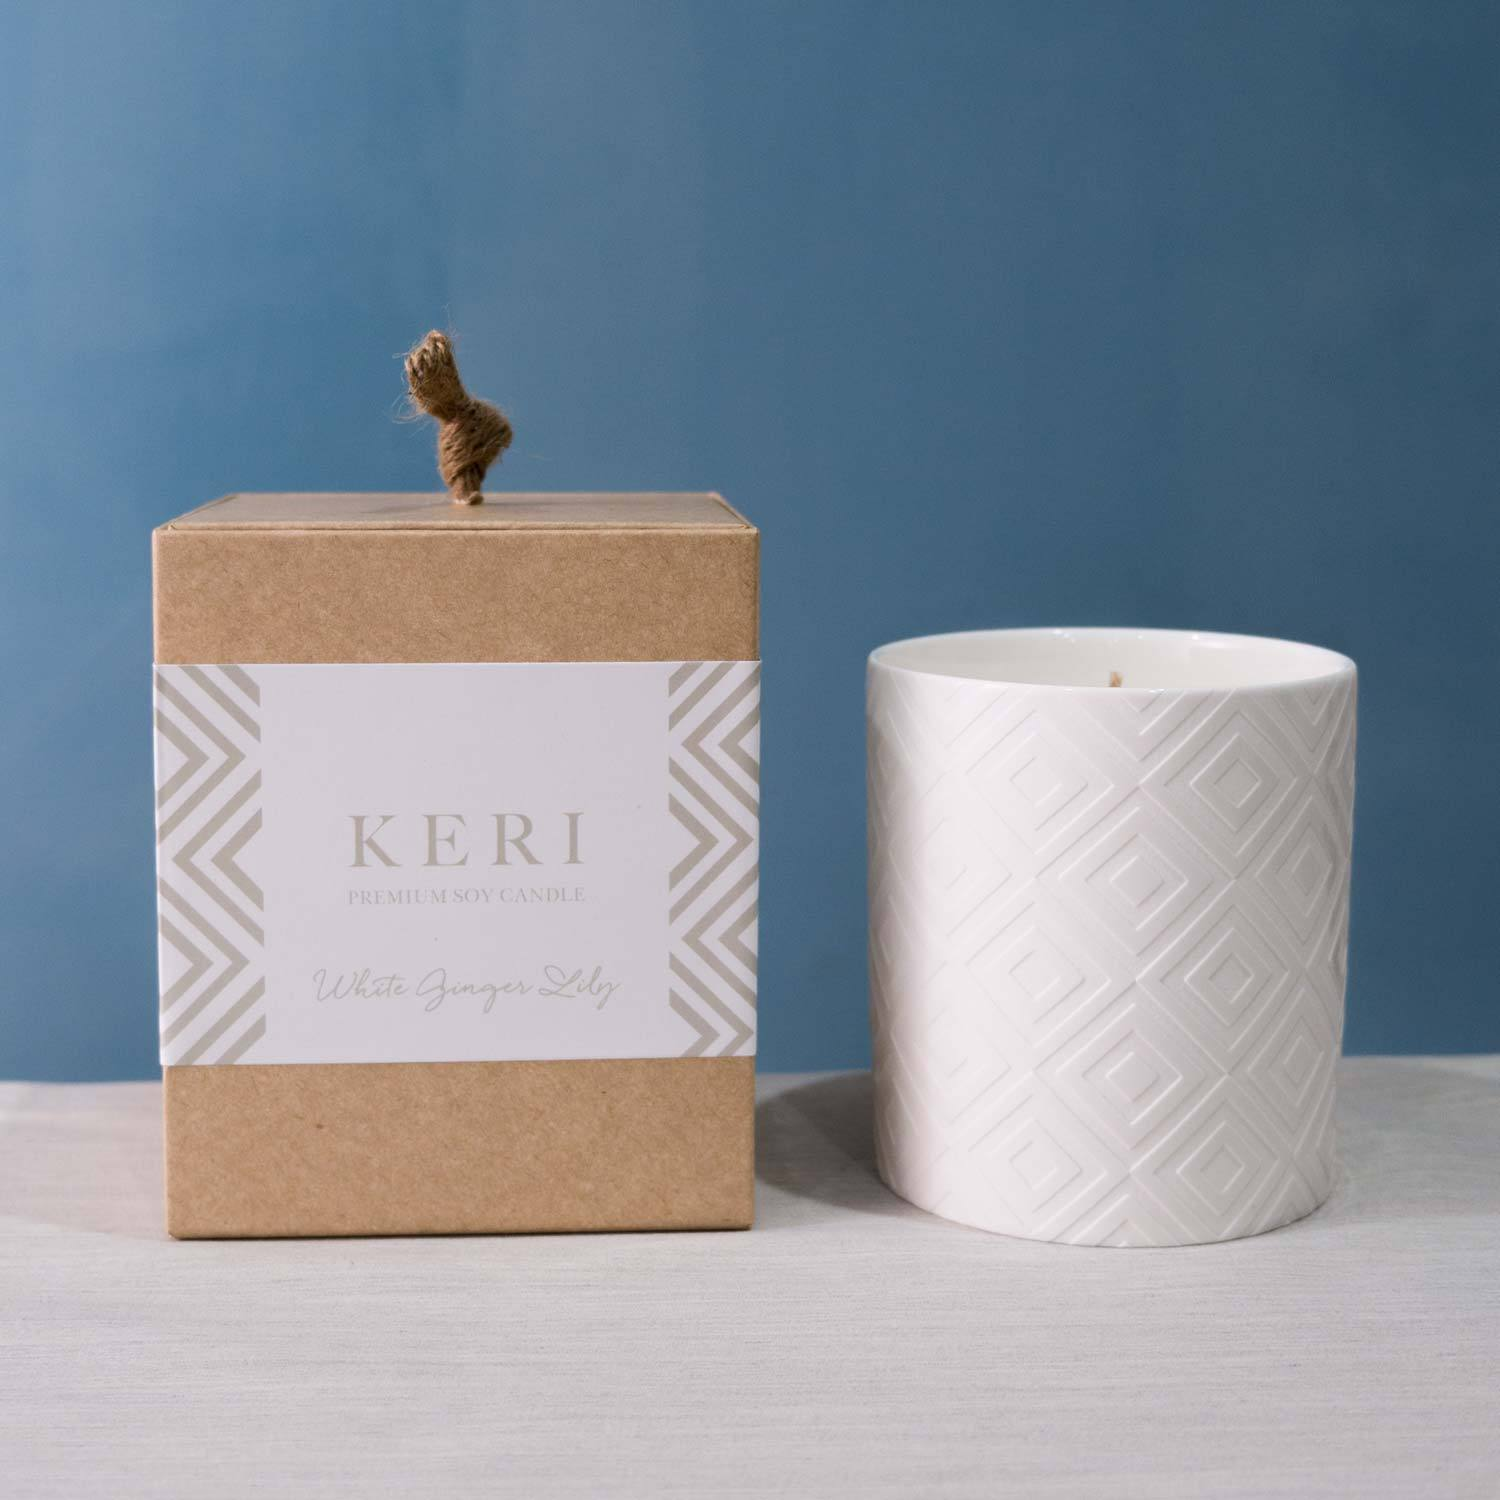 Luxury Soy Candle Ellie Ceramic Jar - Florii Flower Studio